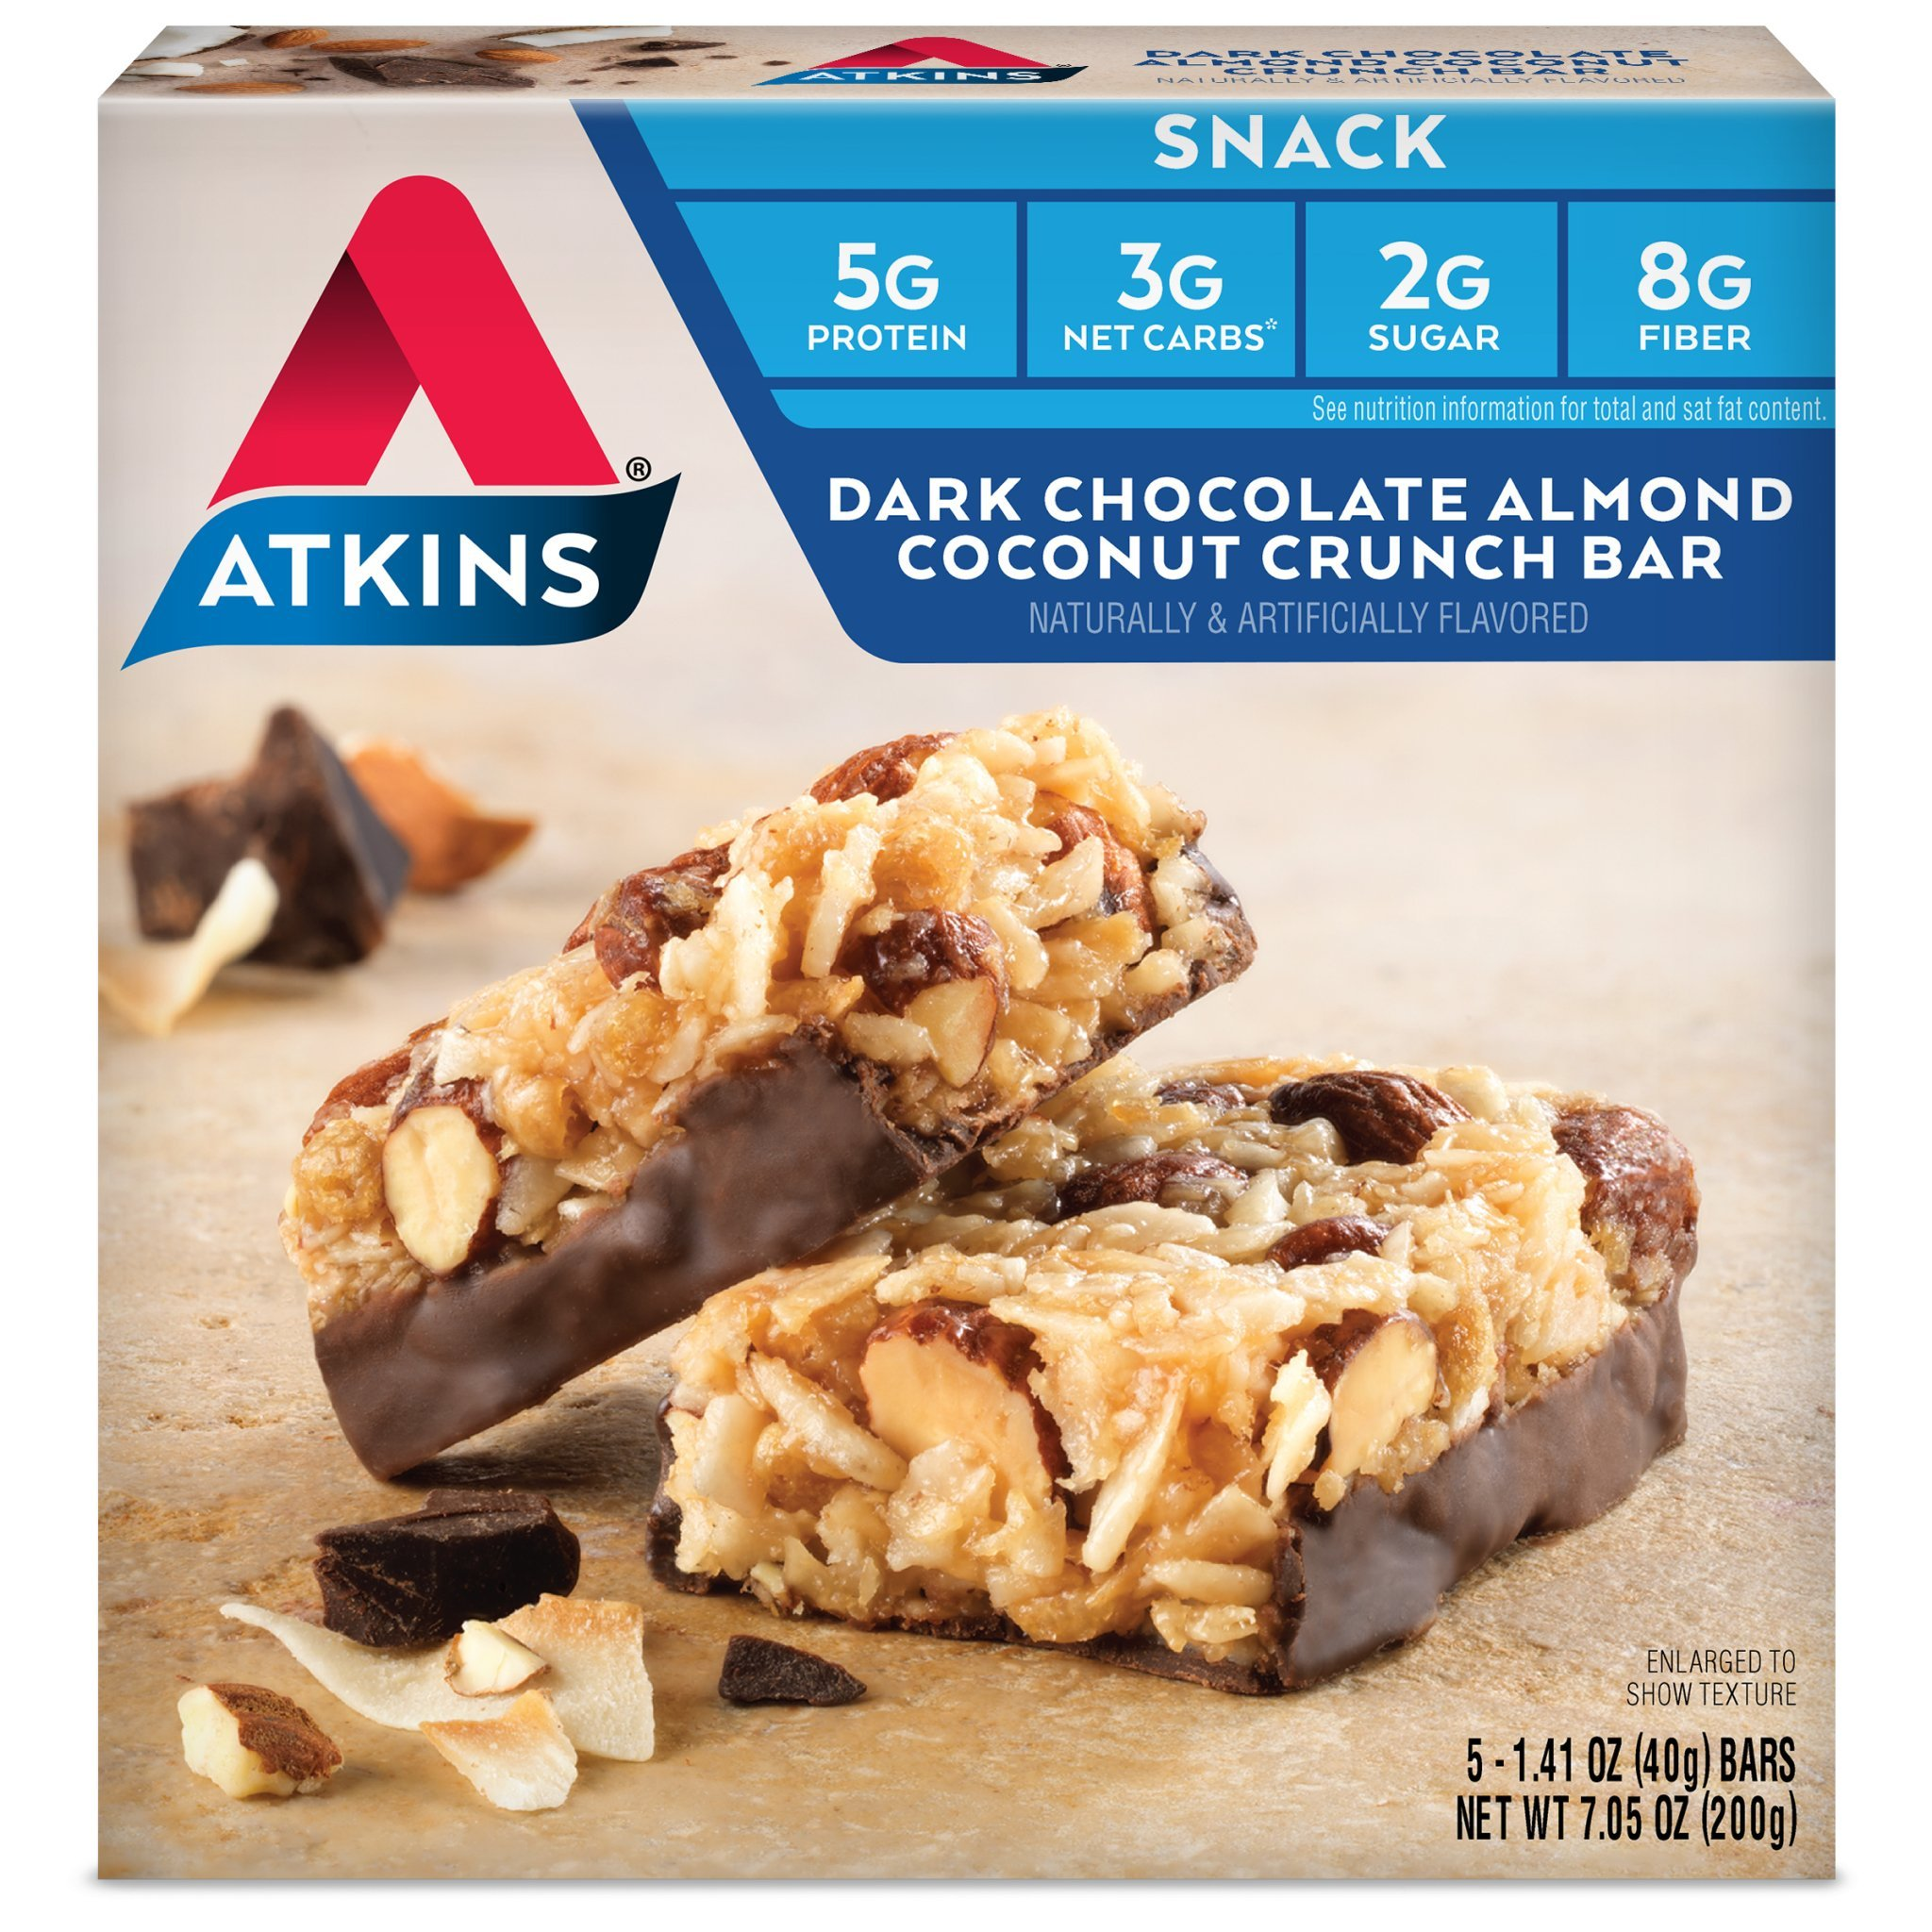 Atkins Snack Bars, Dark Chocolate Almond Coconut Crunch, 1.4 Ounce, 5 Count